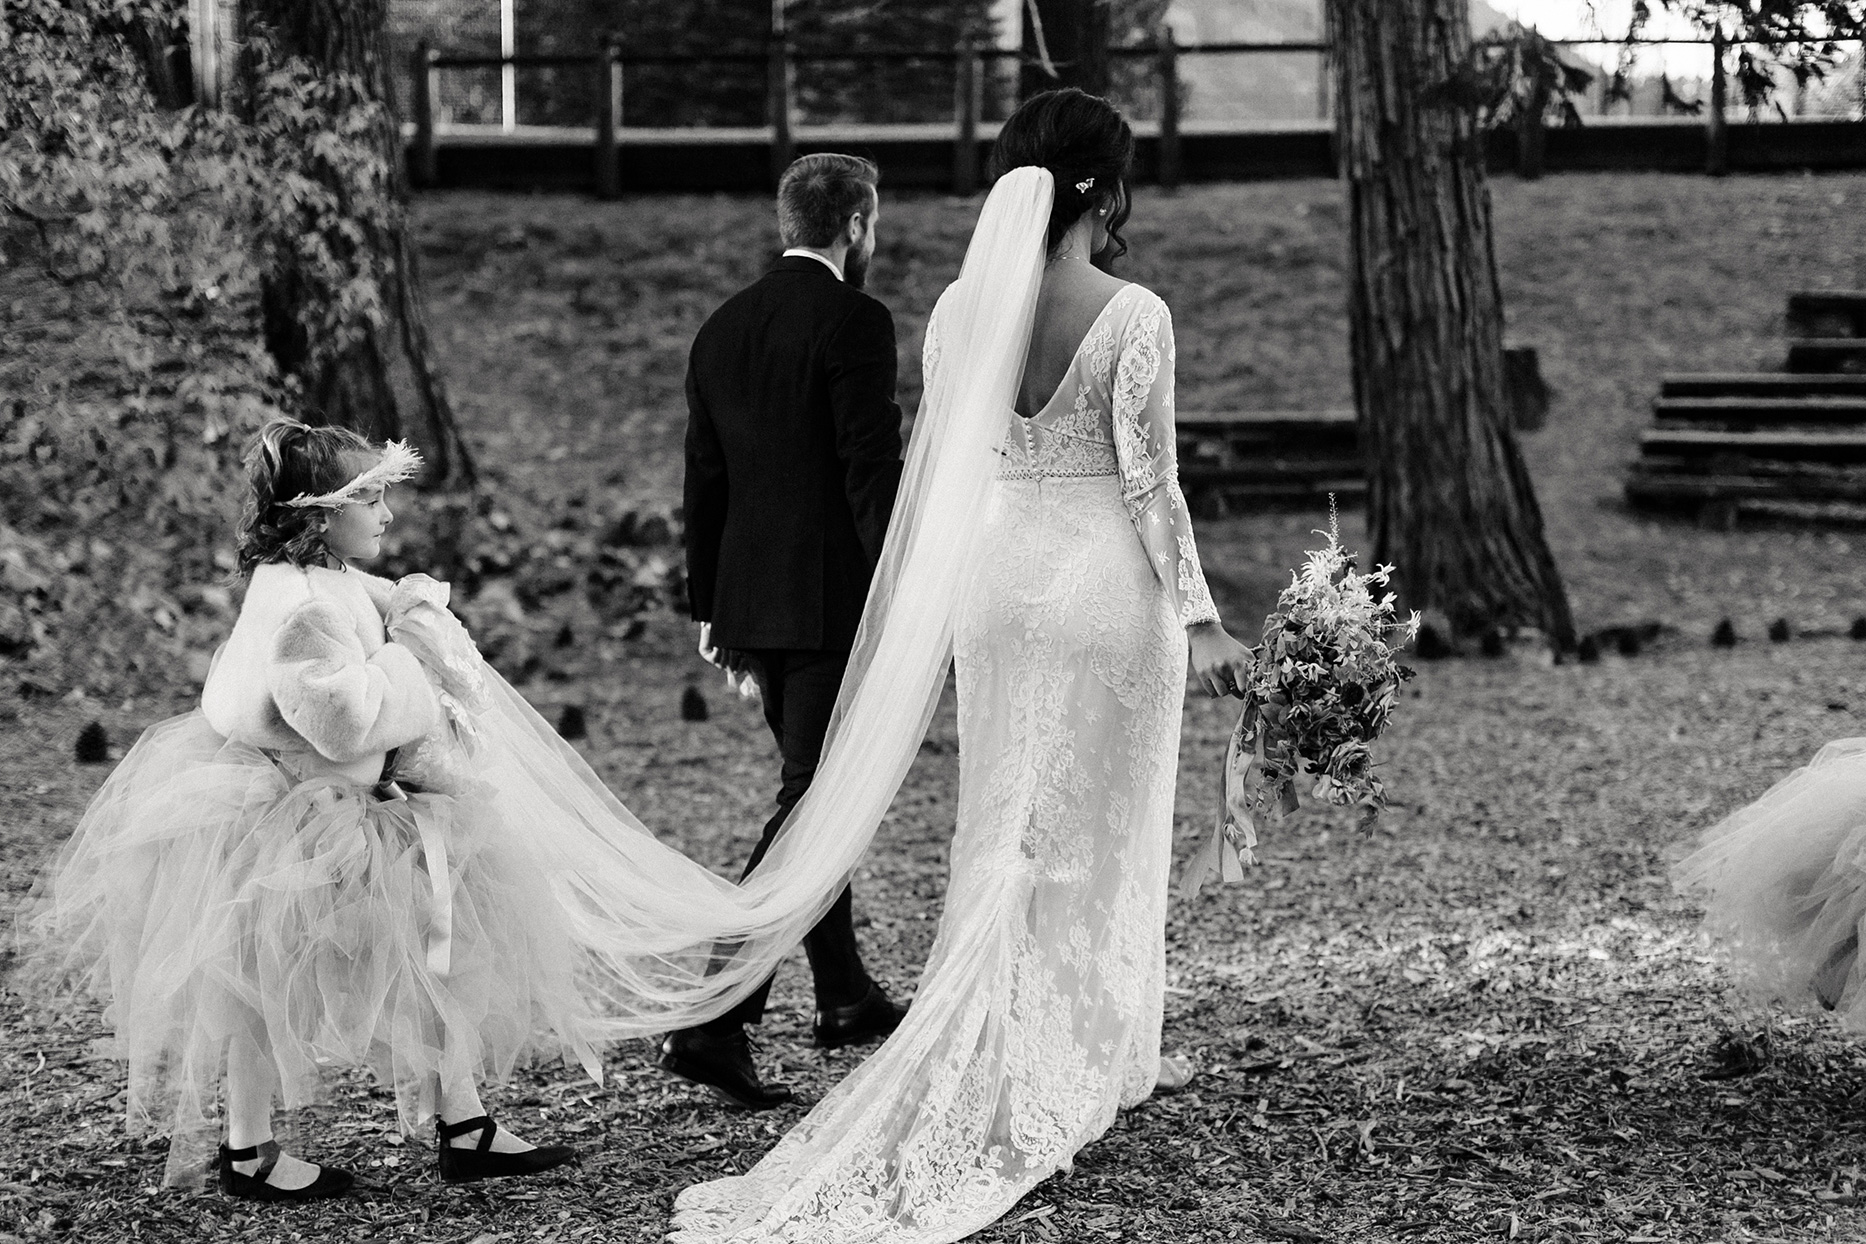 wedding couple walking together while flower girl carries veil train